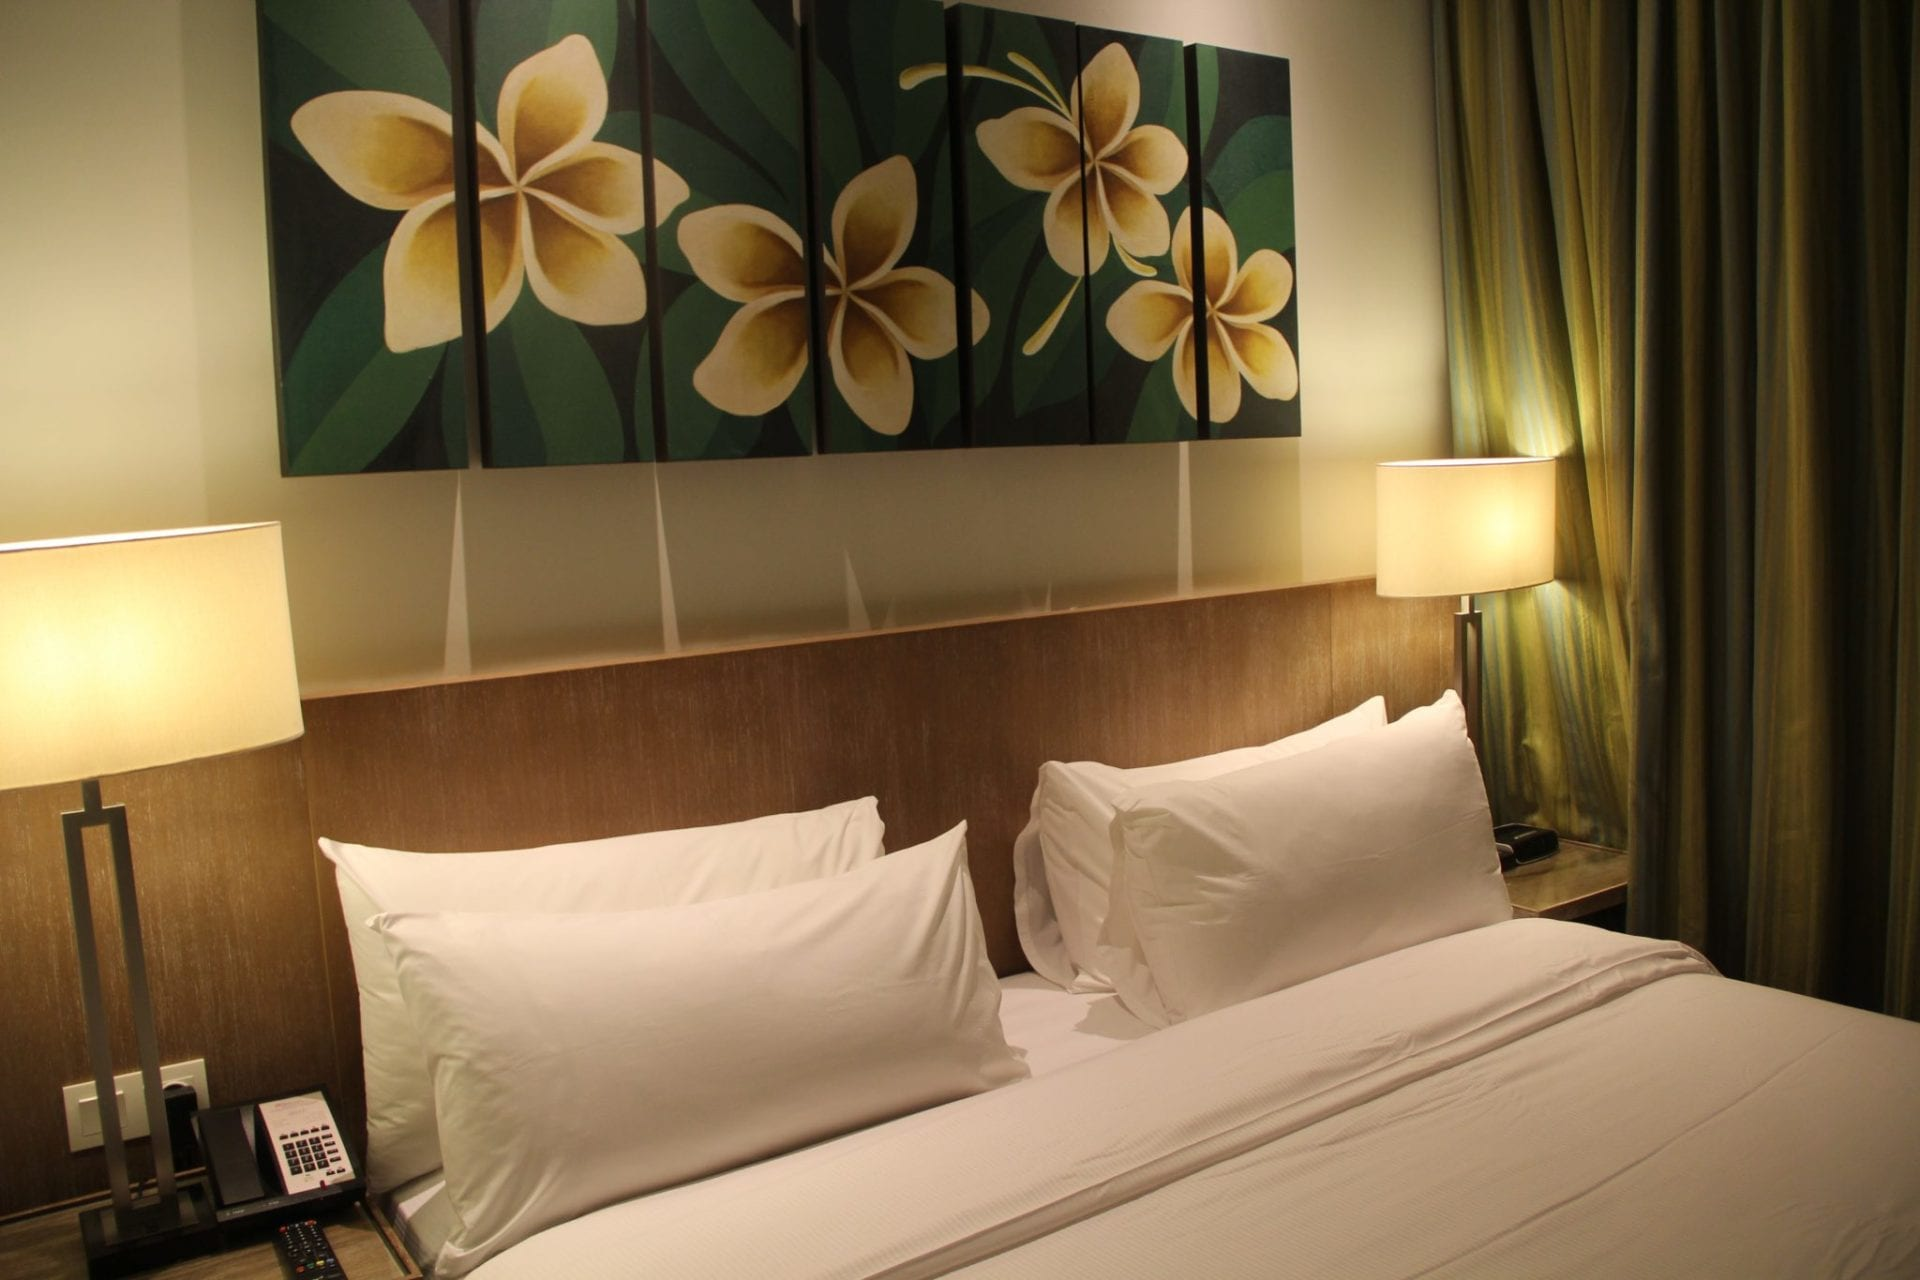 hilton-garden-inn-bali-king-one-bedroom-suie